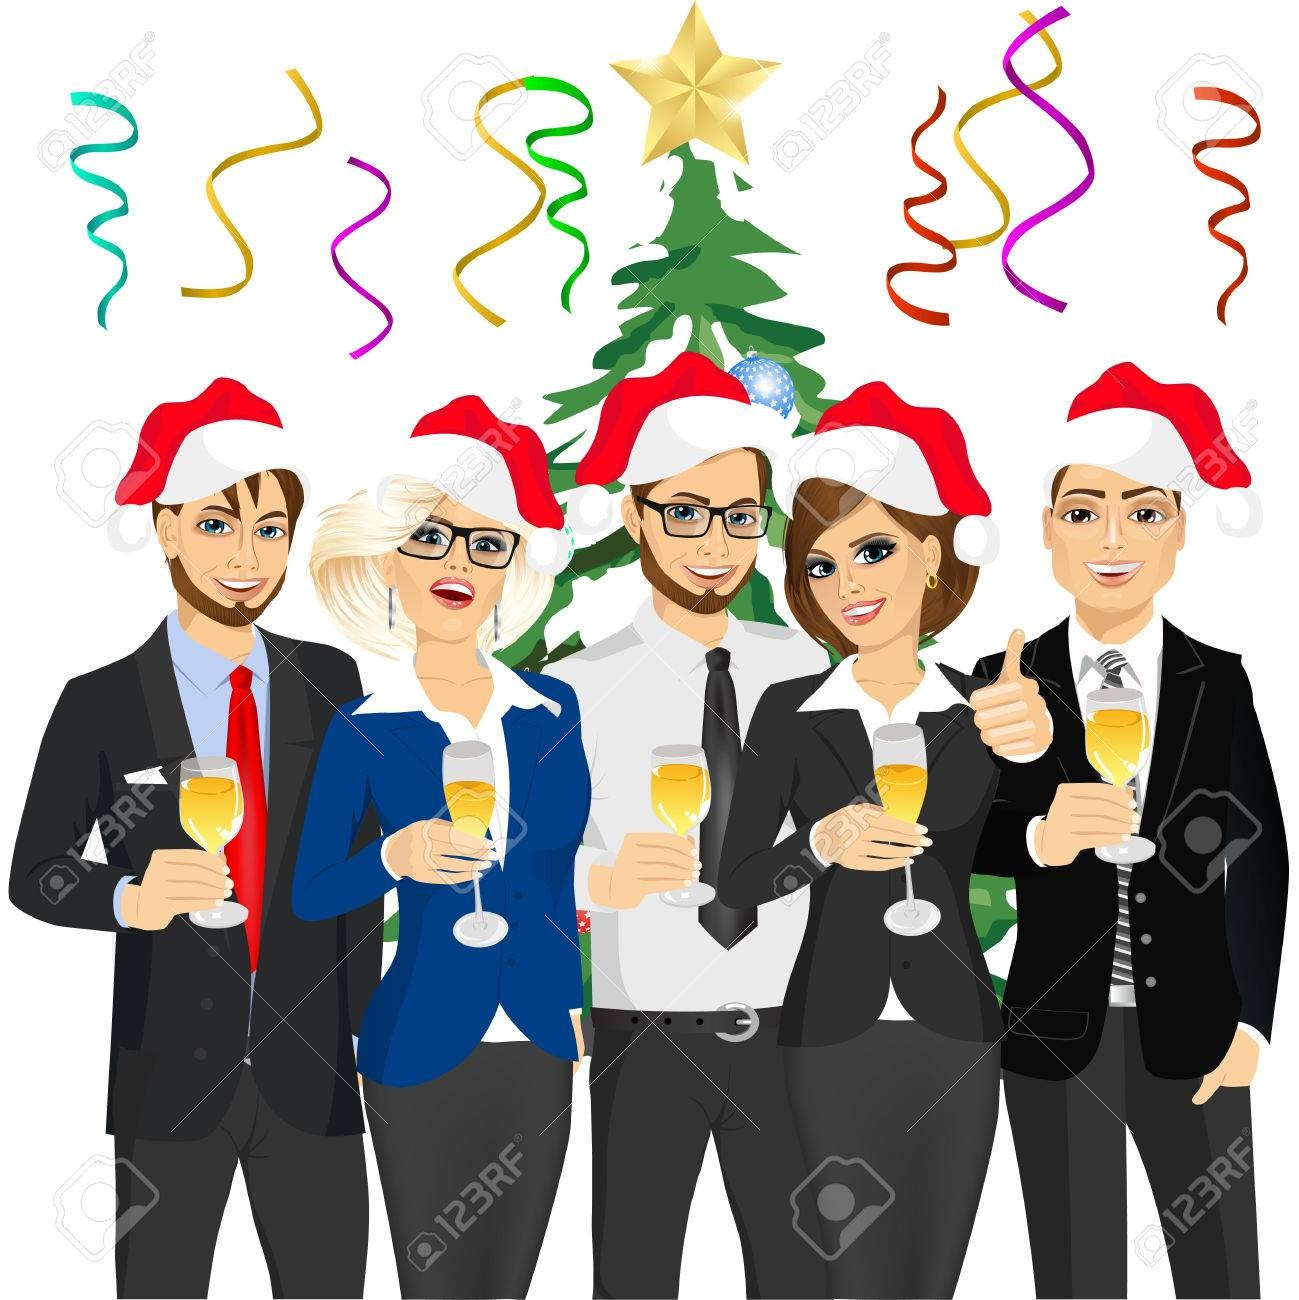 49176555 Business People Group Wearing Santa Hats At Corporate.